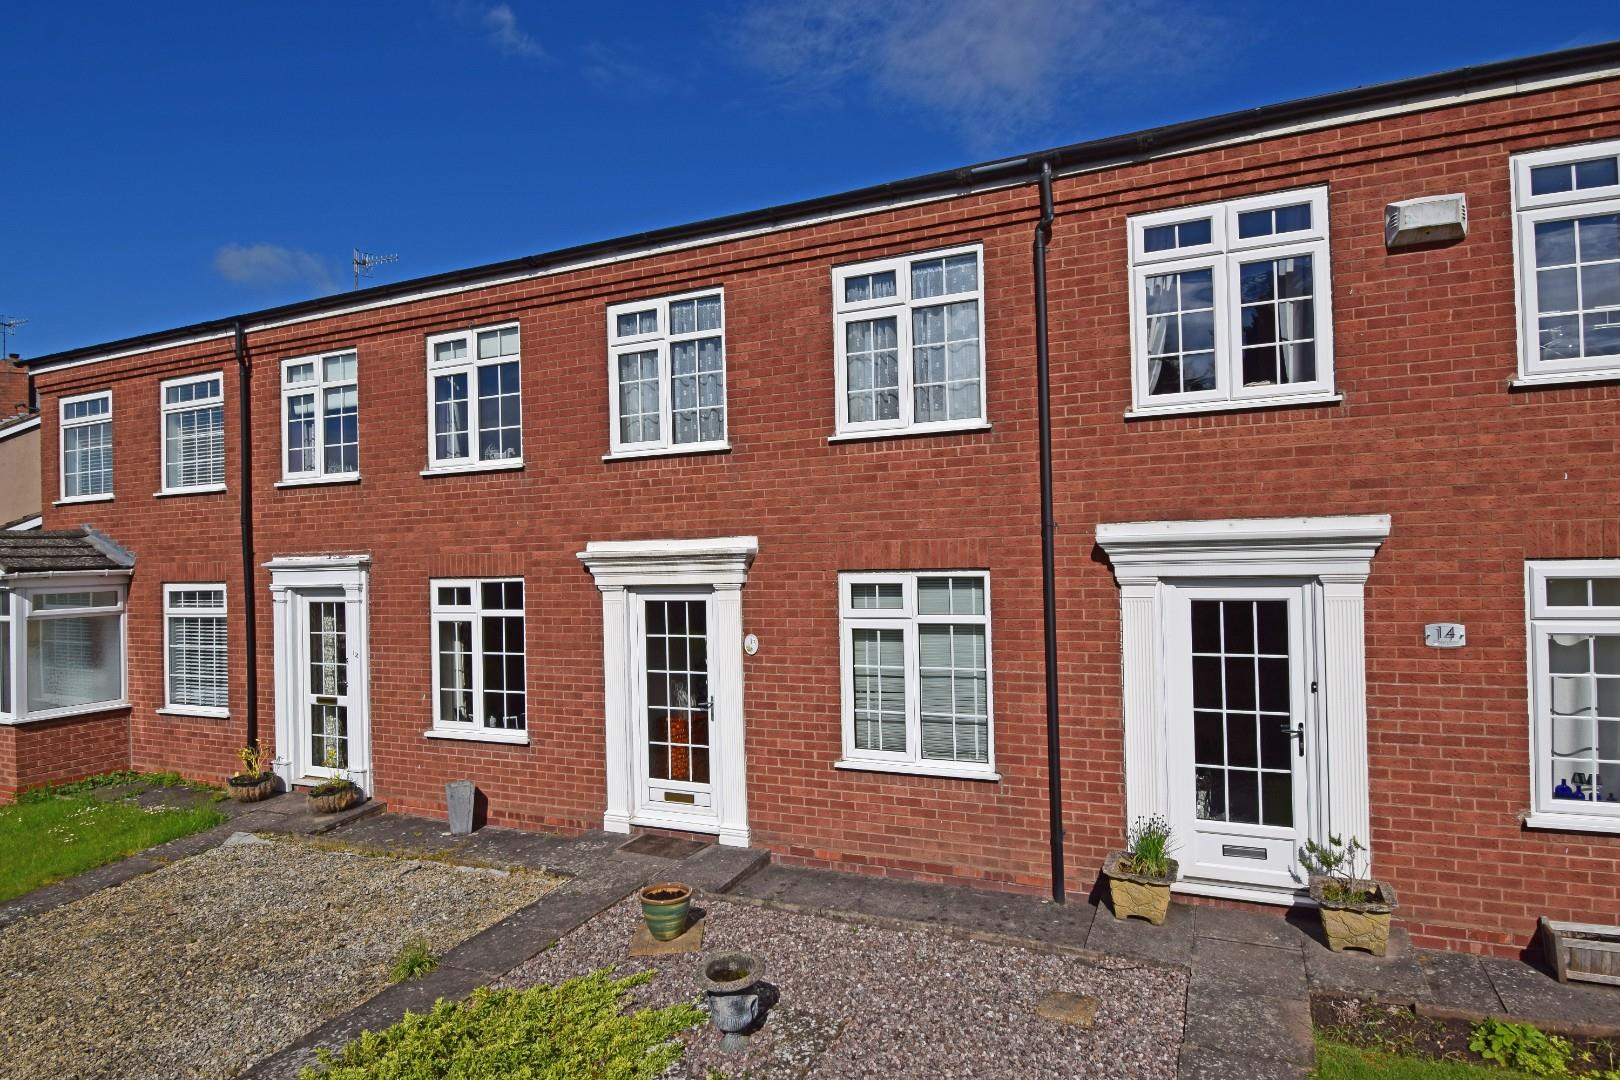 13 Church Road, Droitwich, Worcestershire, WR9 8LN